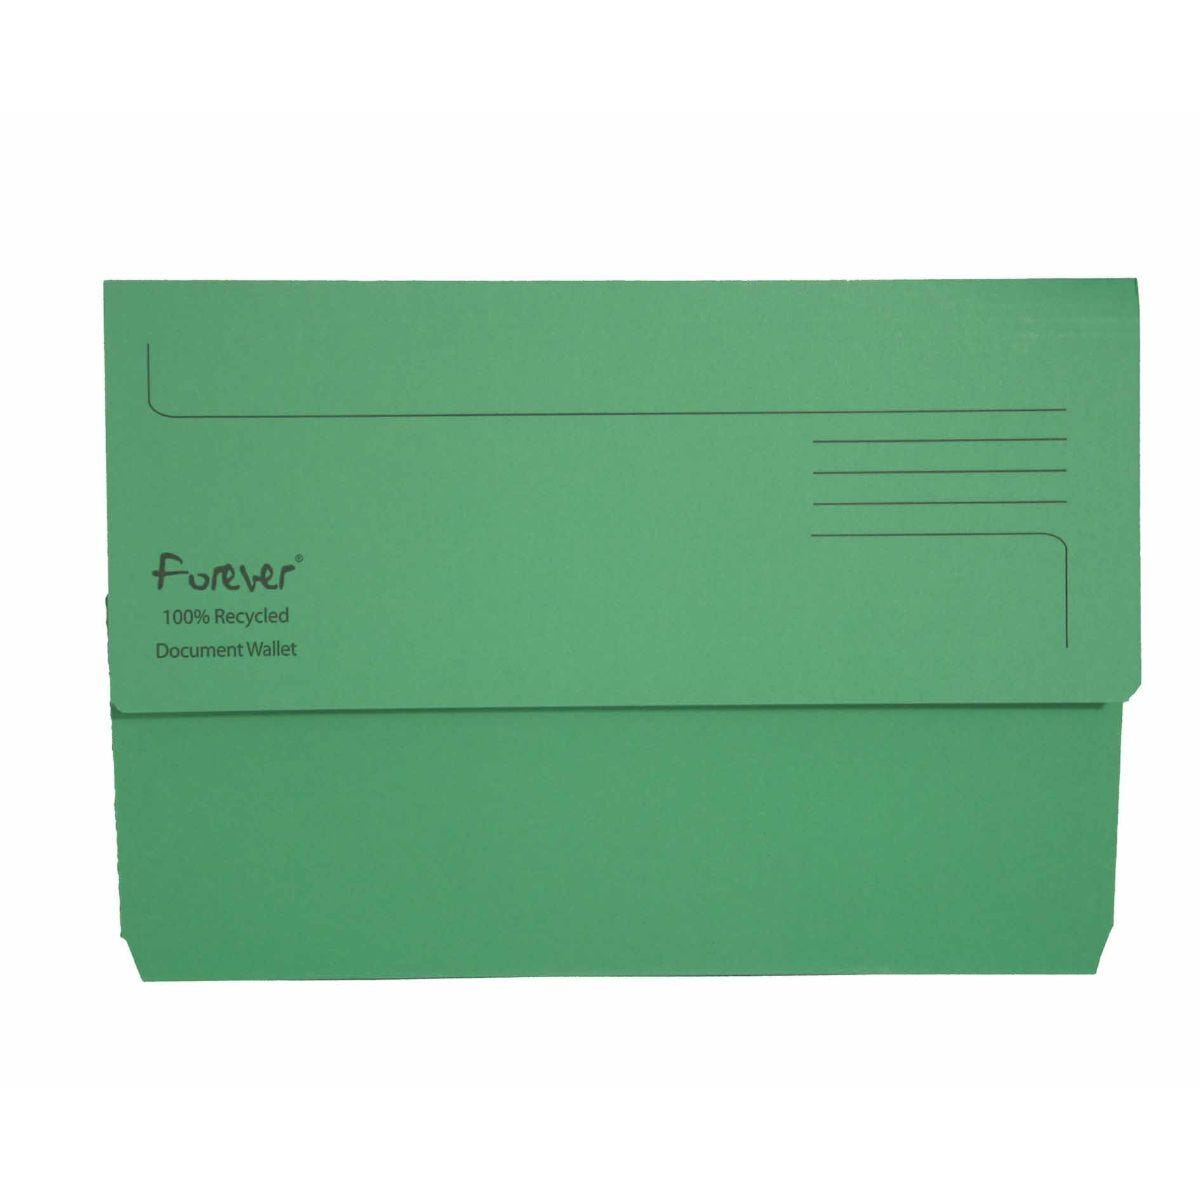 Exacompta Forever Document Wallet Foolscap Pack of 25 300gsm Green